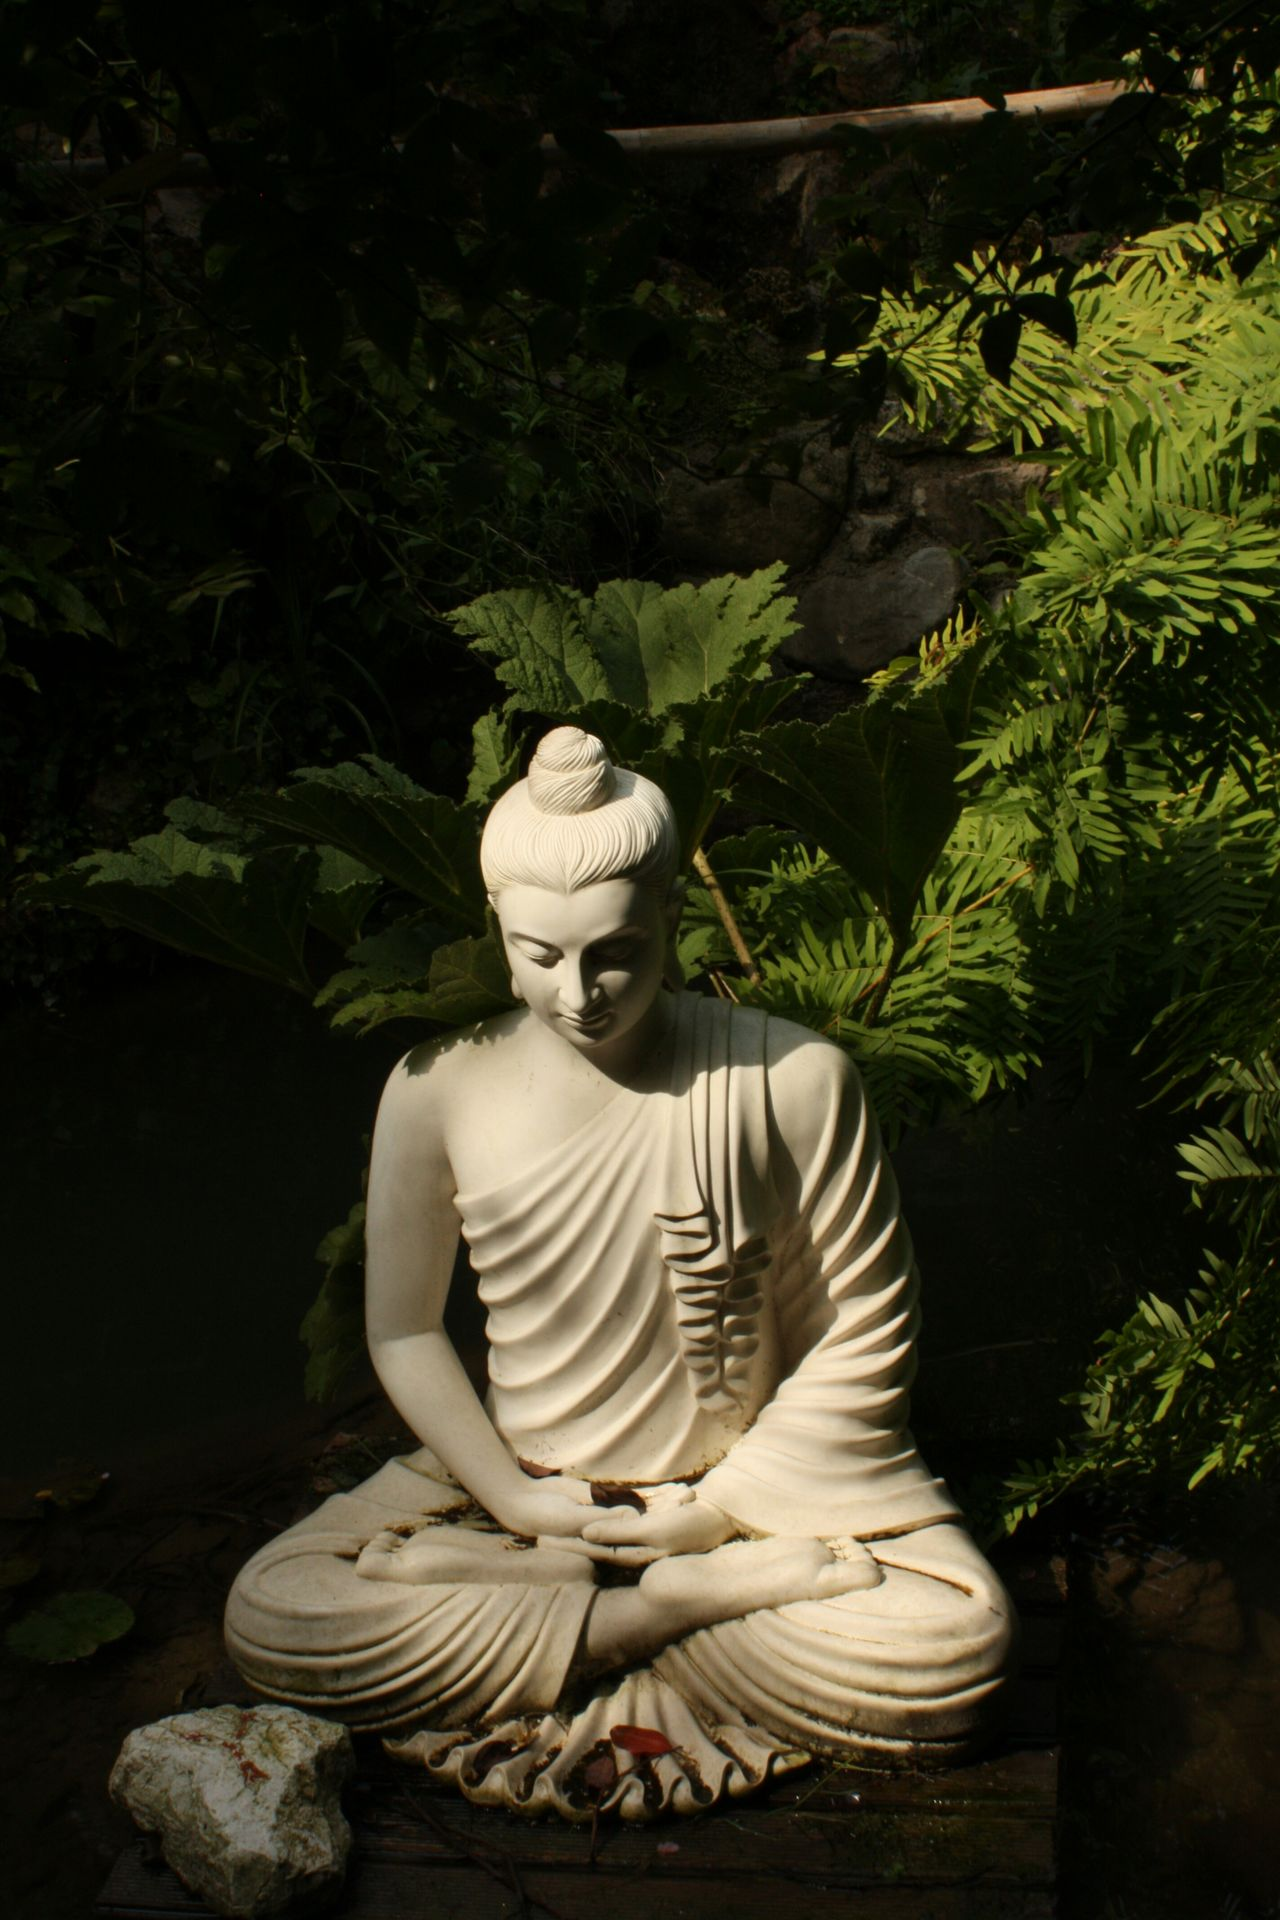 Lotus Position No People Zen Garden Bamboo Grove Tranquility Beauty In Nature EyEmNewHere No Filters Or Effects No Filter, No Edit, Just Photography No Filter Bamboo Zen Nature Outdoors Green Color Tree Plant Freshness Water Growth Buddism Buddist Statue White Color Contrasts Shadows & Lights